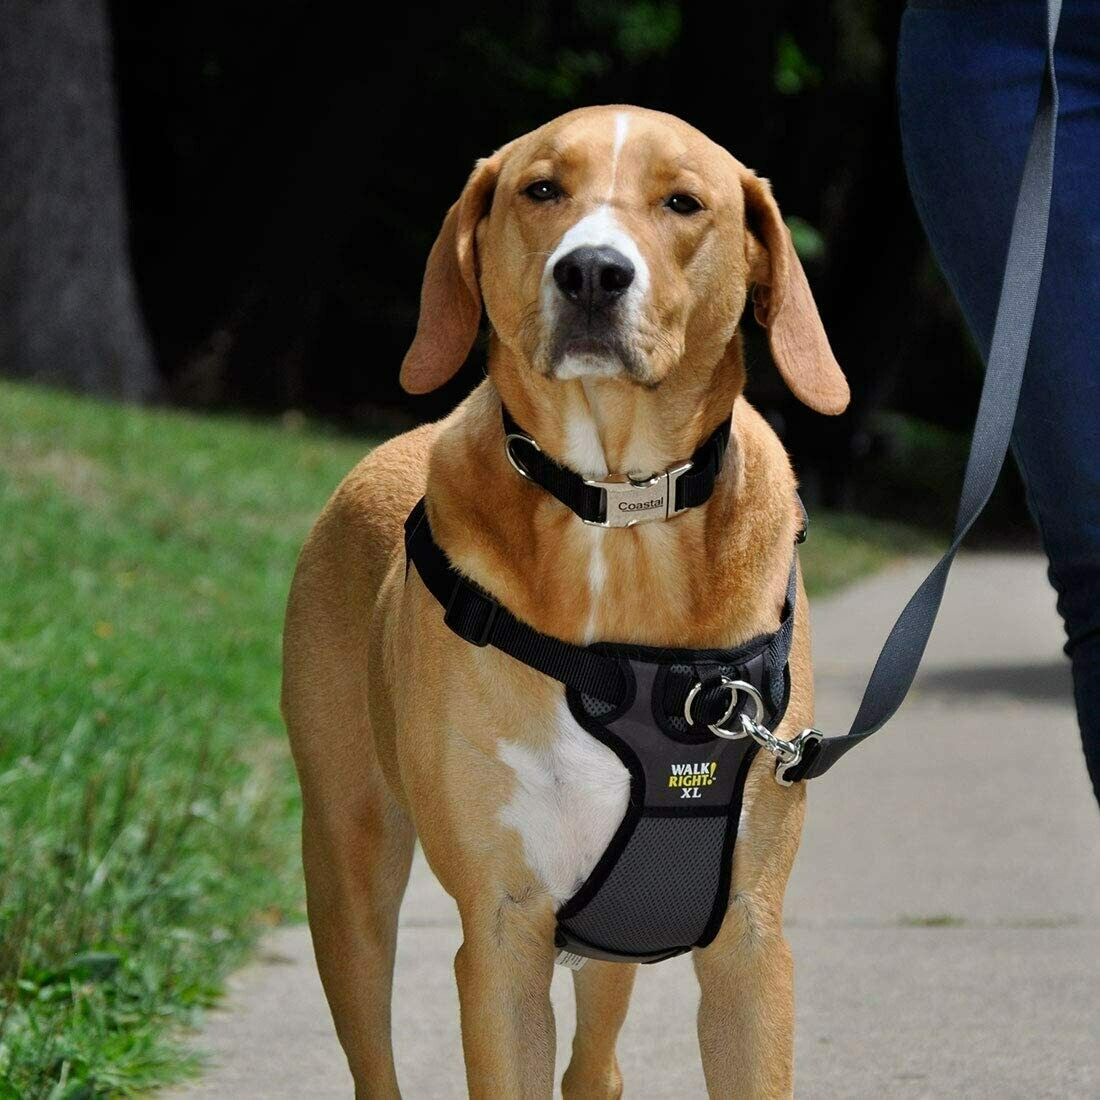 WALK RIGHT HARNESS BLK-XLG.